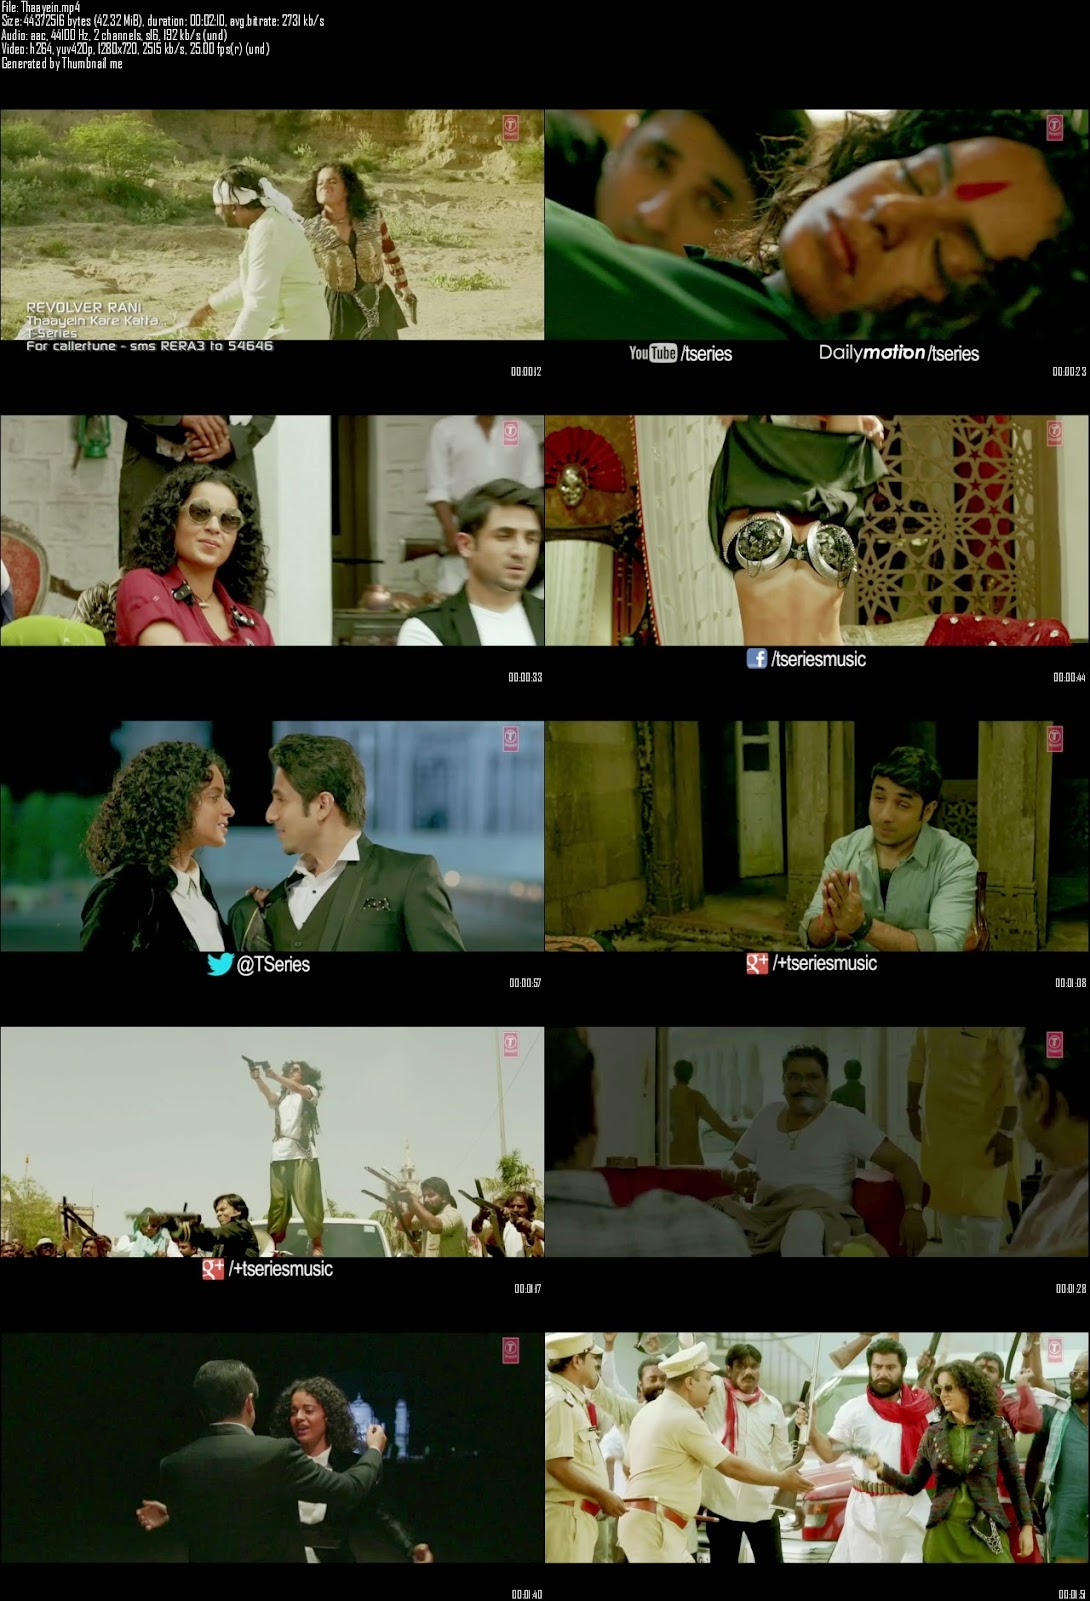 Mediafire Resumable Download Link For Video Song Thaayein Kare Katta - Revolver Rani (2014)